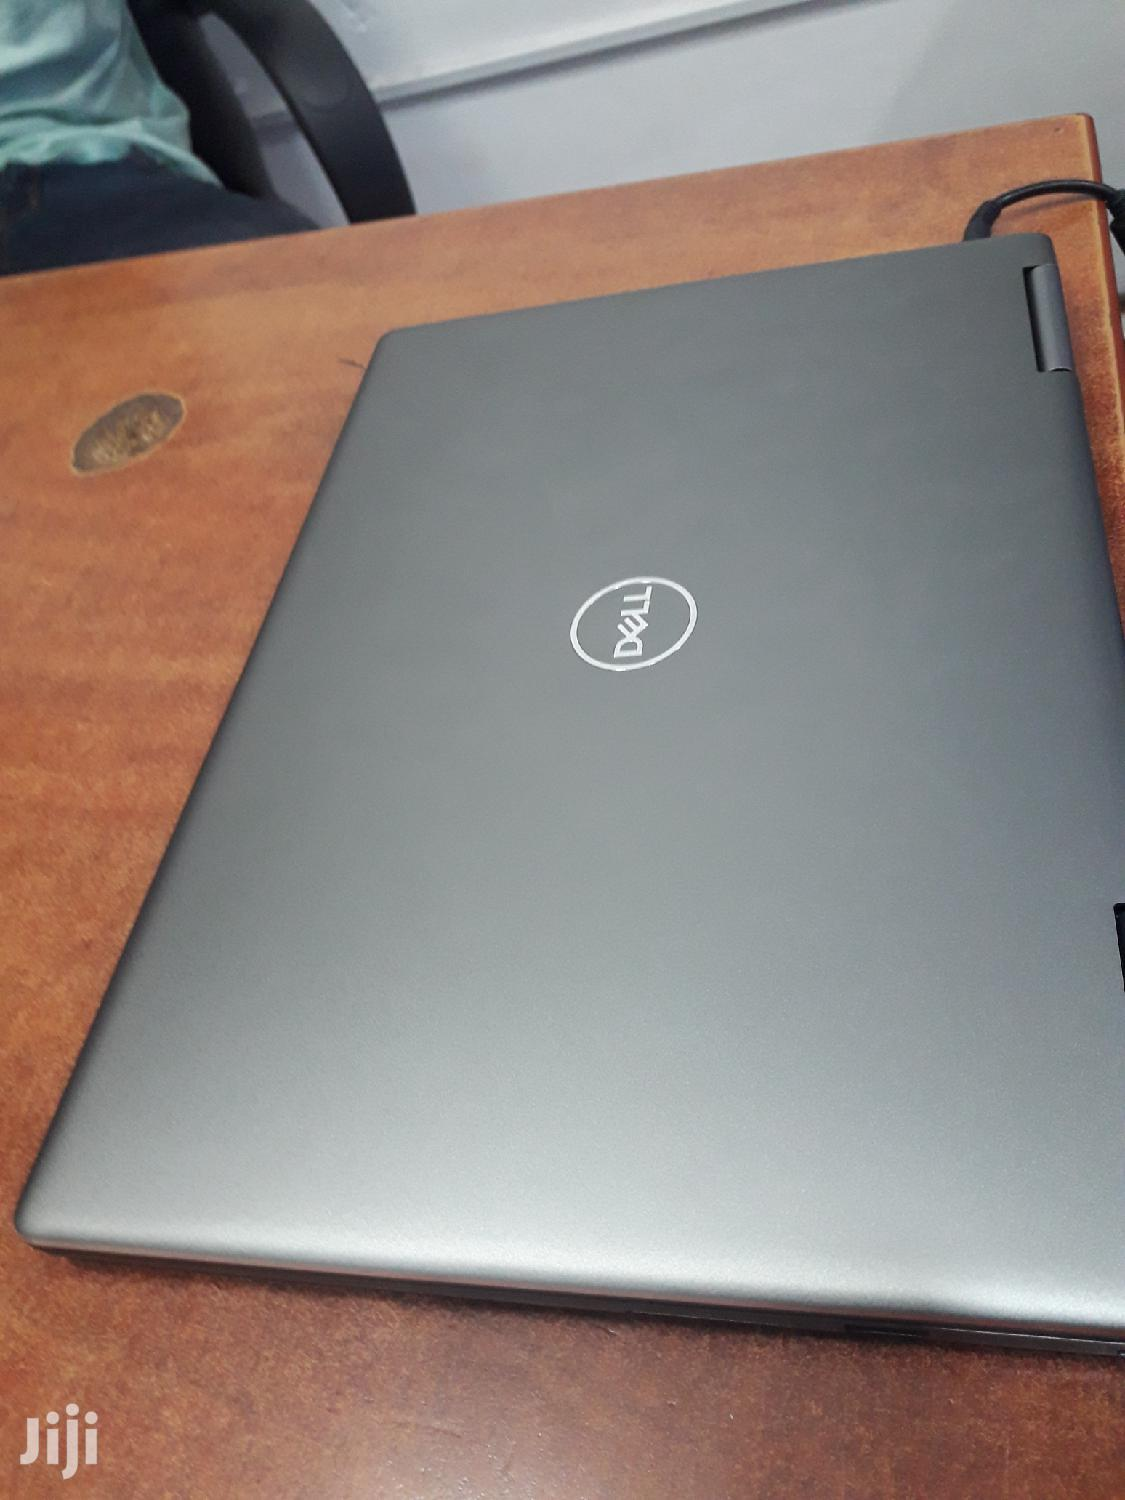 New Laptop Dell Inspiron 13 7373 8GB Intel Core i5 SSHD (Hybrid) 256GB | Laptops & Computers for sale in Kampala, Central Region, Uganda